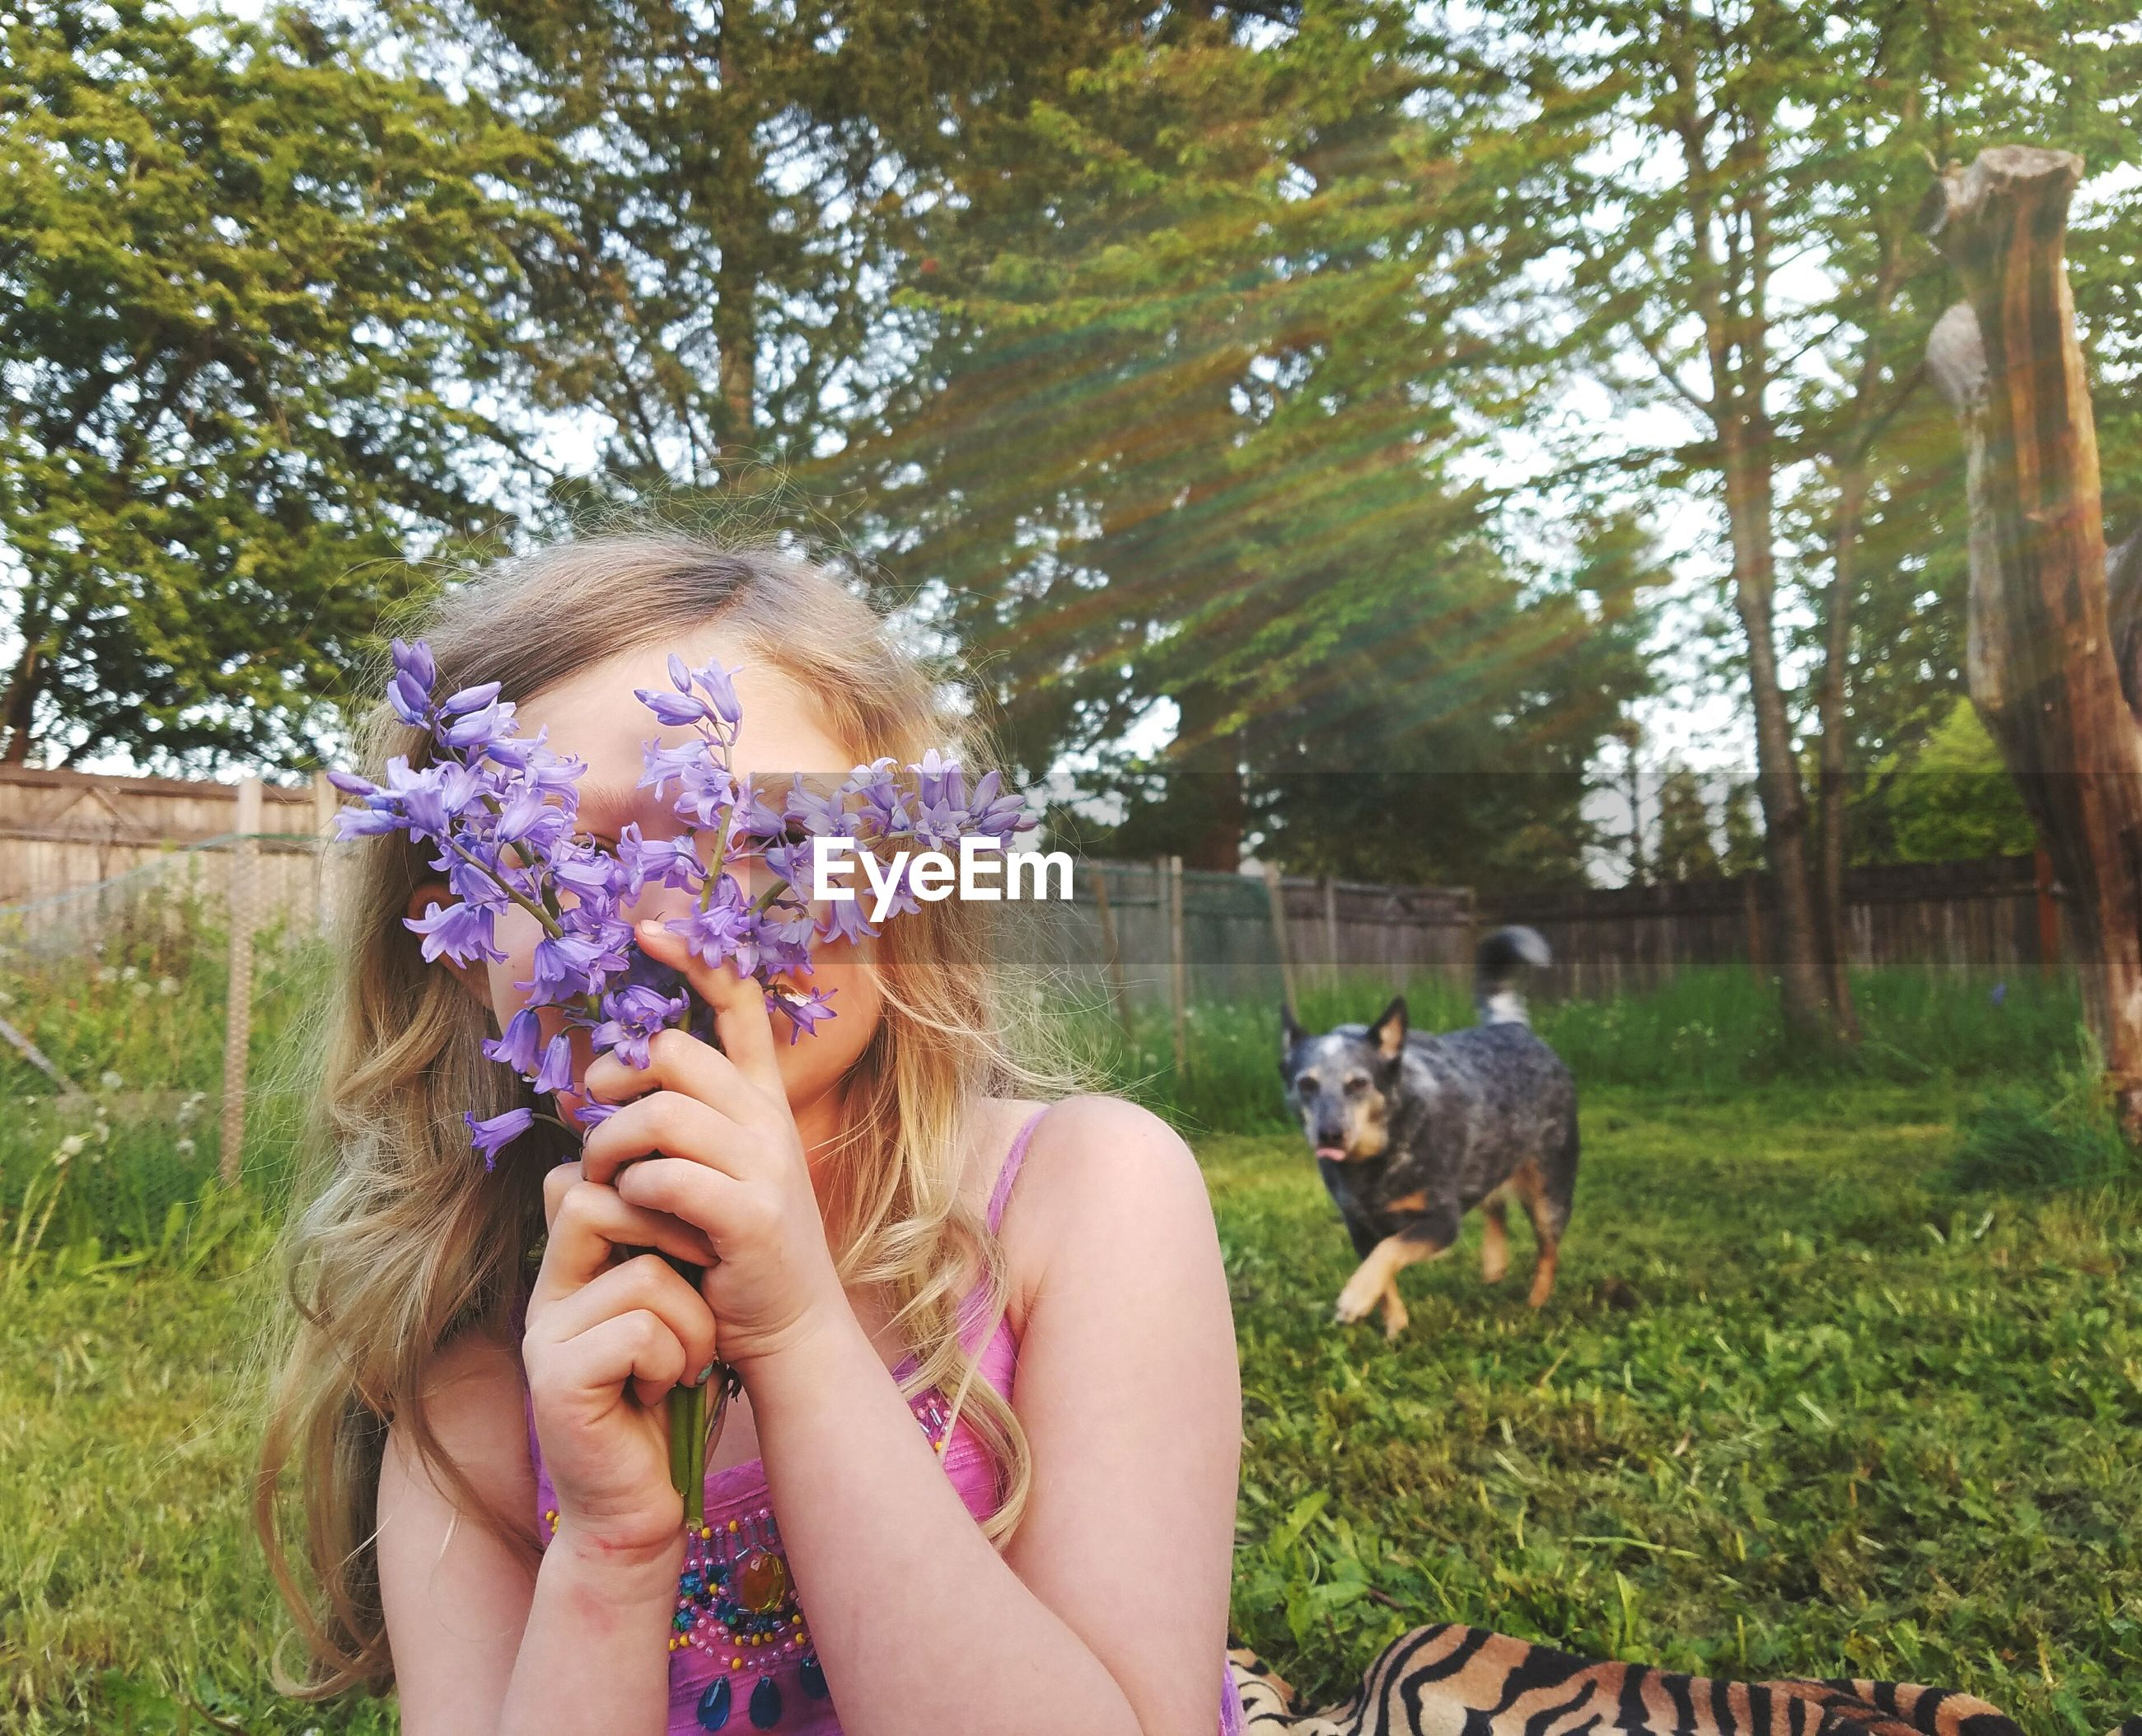 Girl hiding face with purple flowers in park